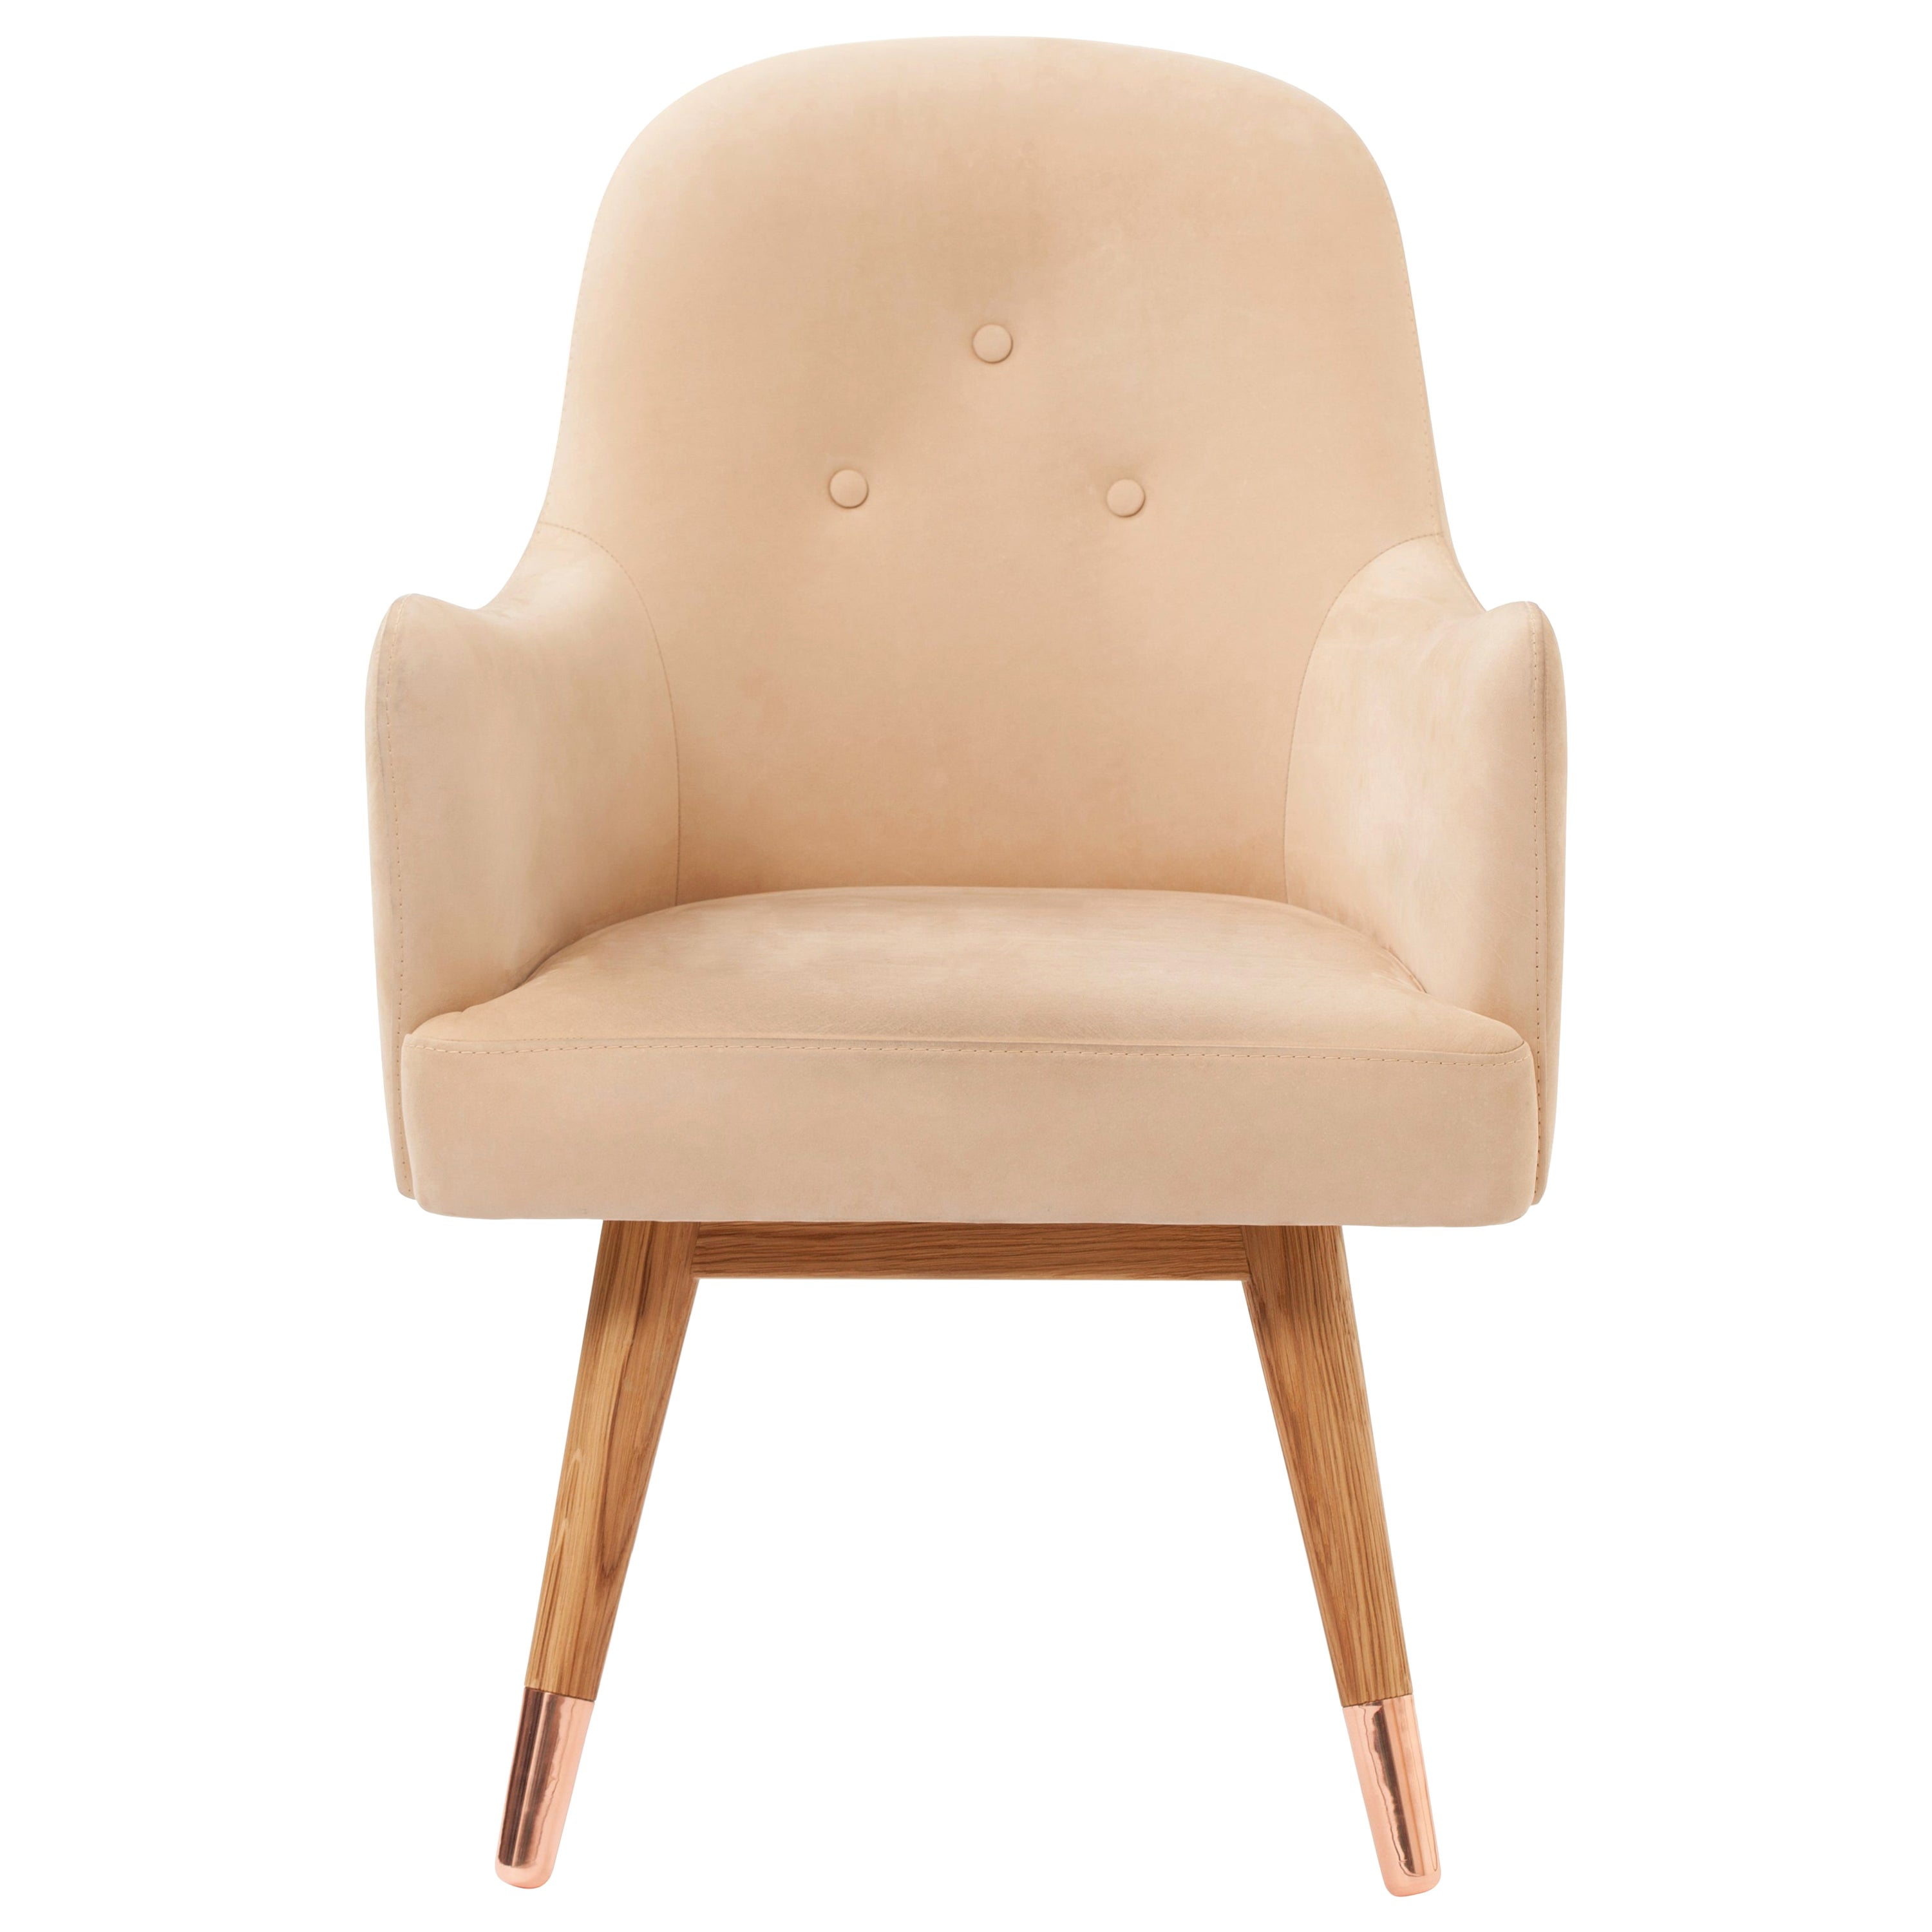 Dandy Beige Suede Leather Chair with American White Oak and Polished Copper